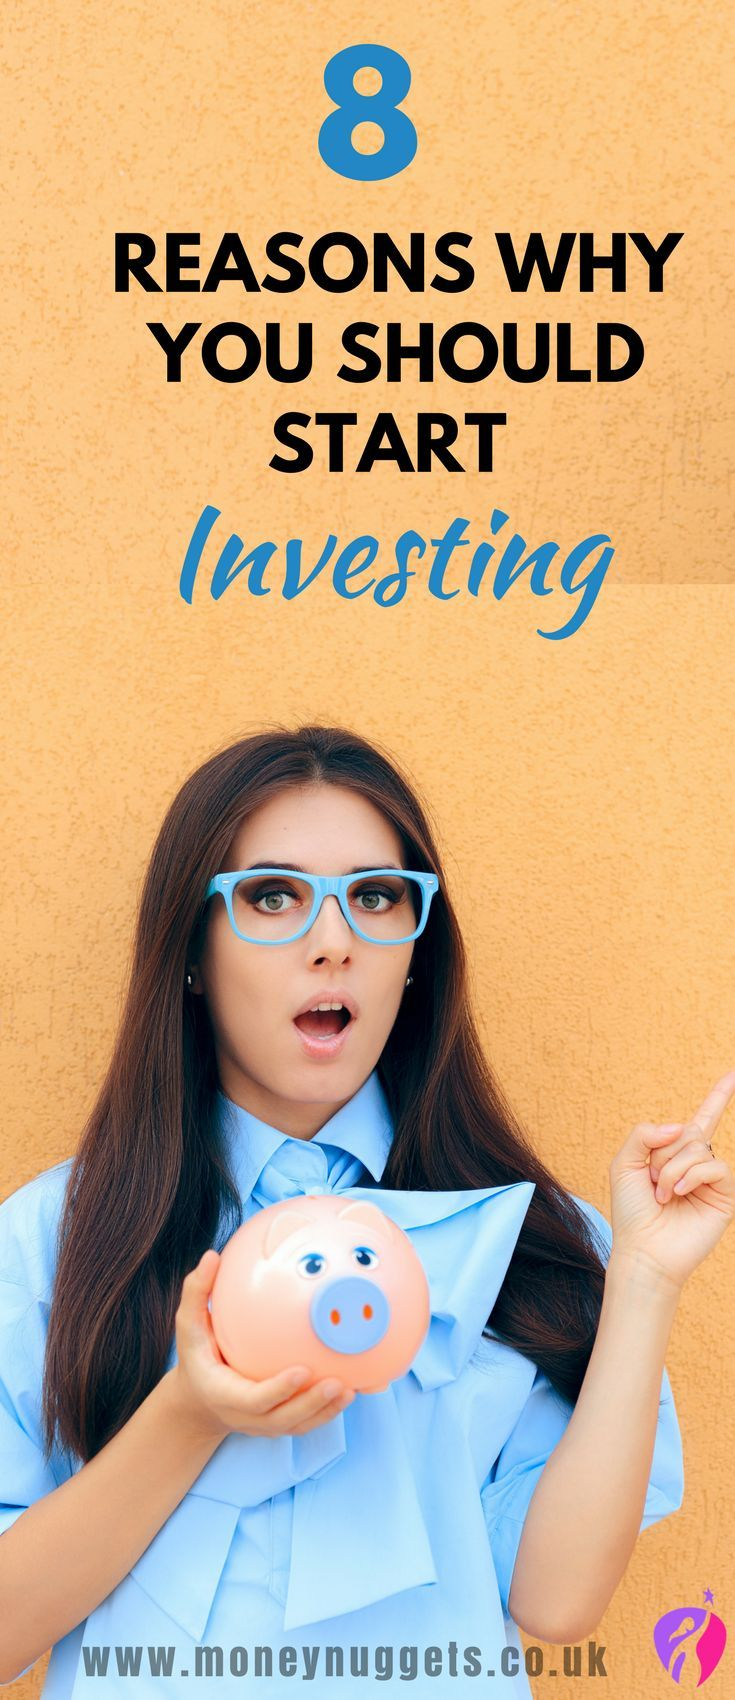 8 Reasons to Invest your money. Investing is a huge opportunity you don't want to miss out on. Not investing is like throwing money away and just in case you are thinking I don't need to invest my money here are some reasons why you should start investing, and make your money work harder.